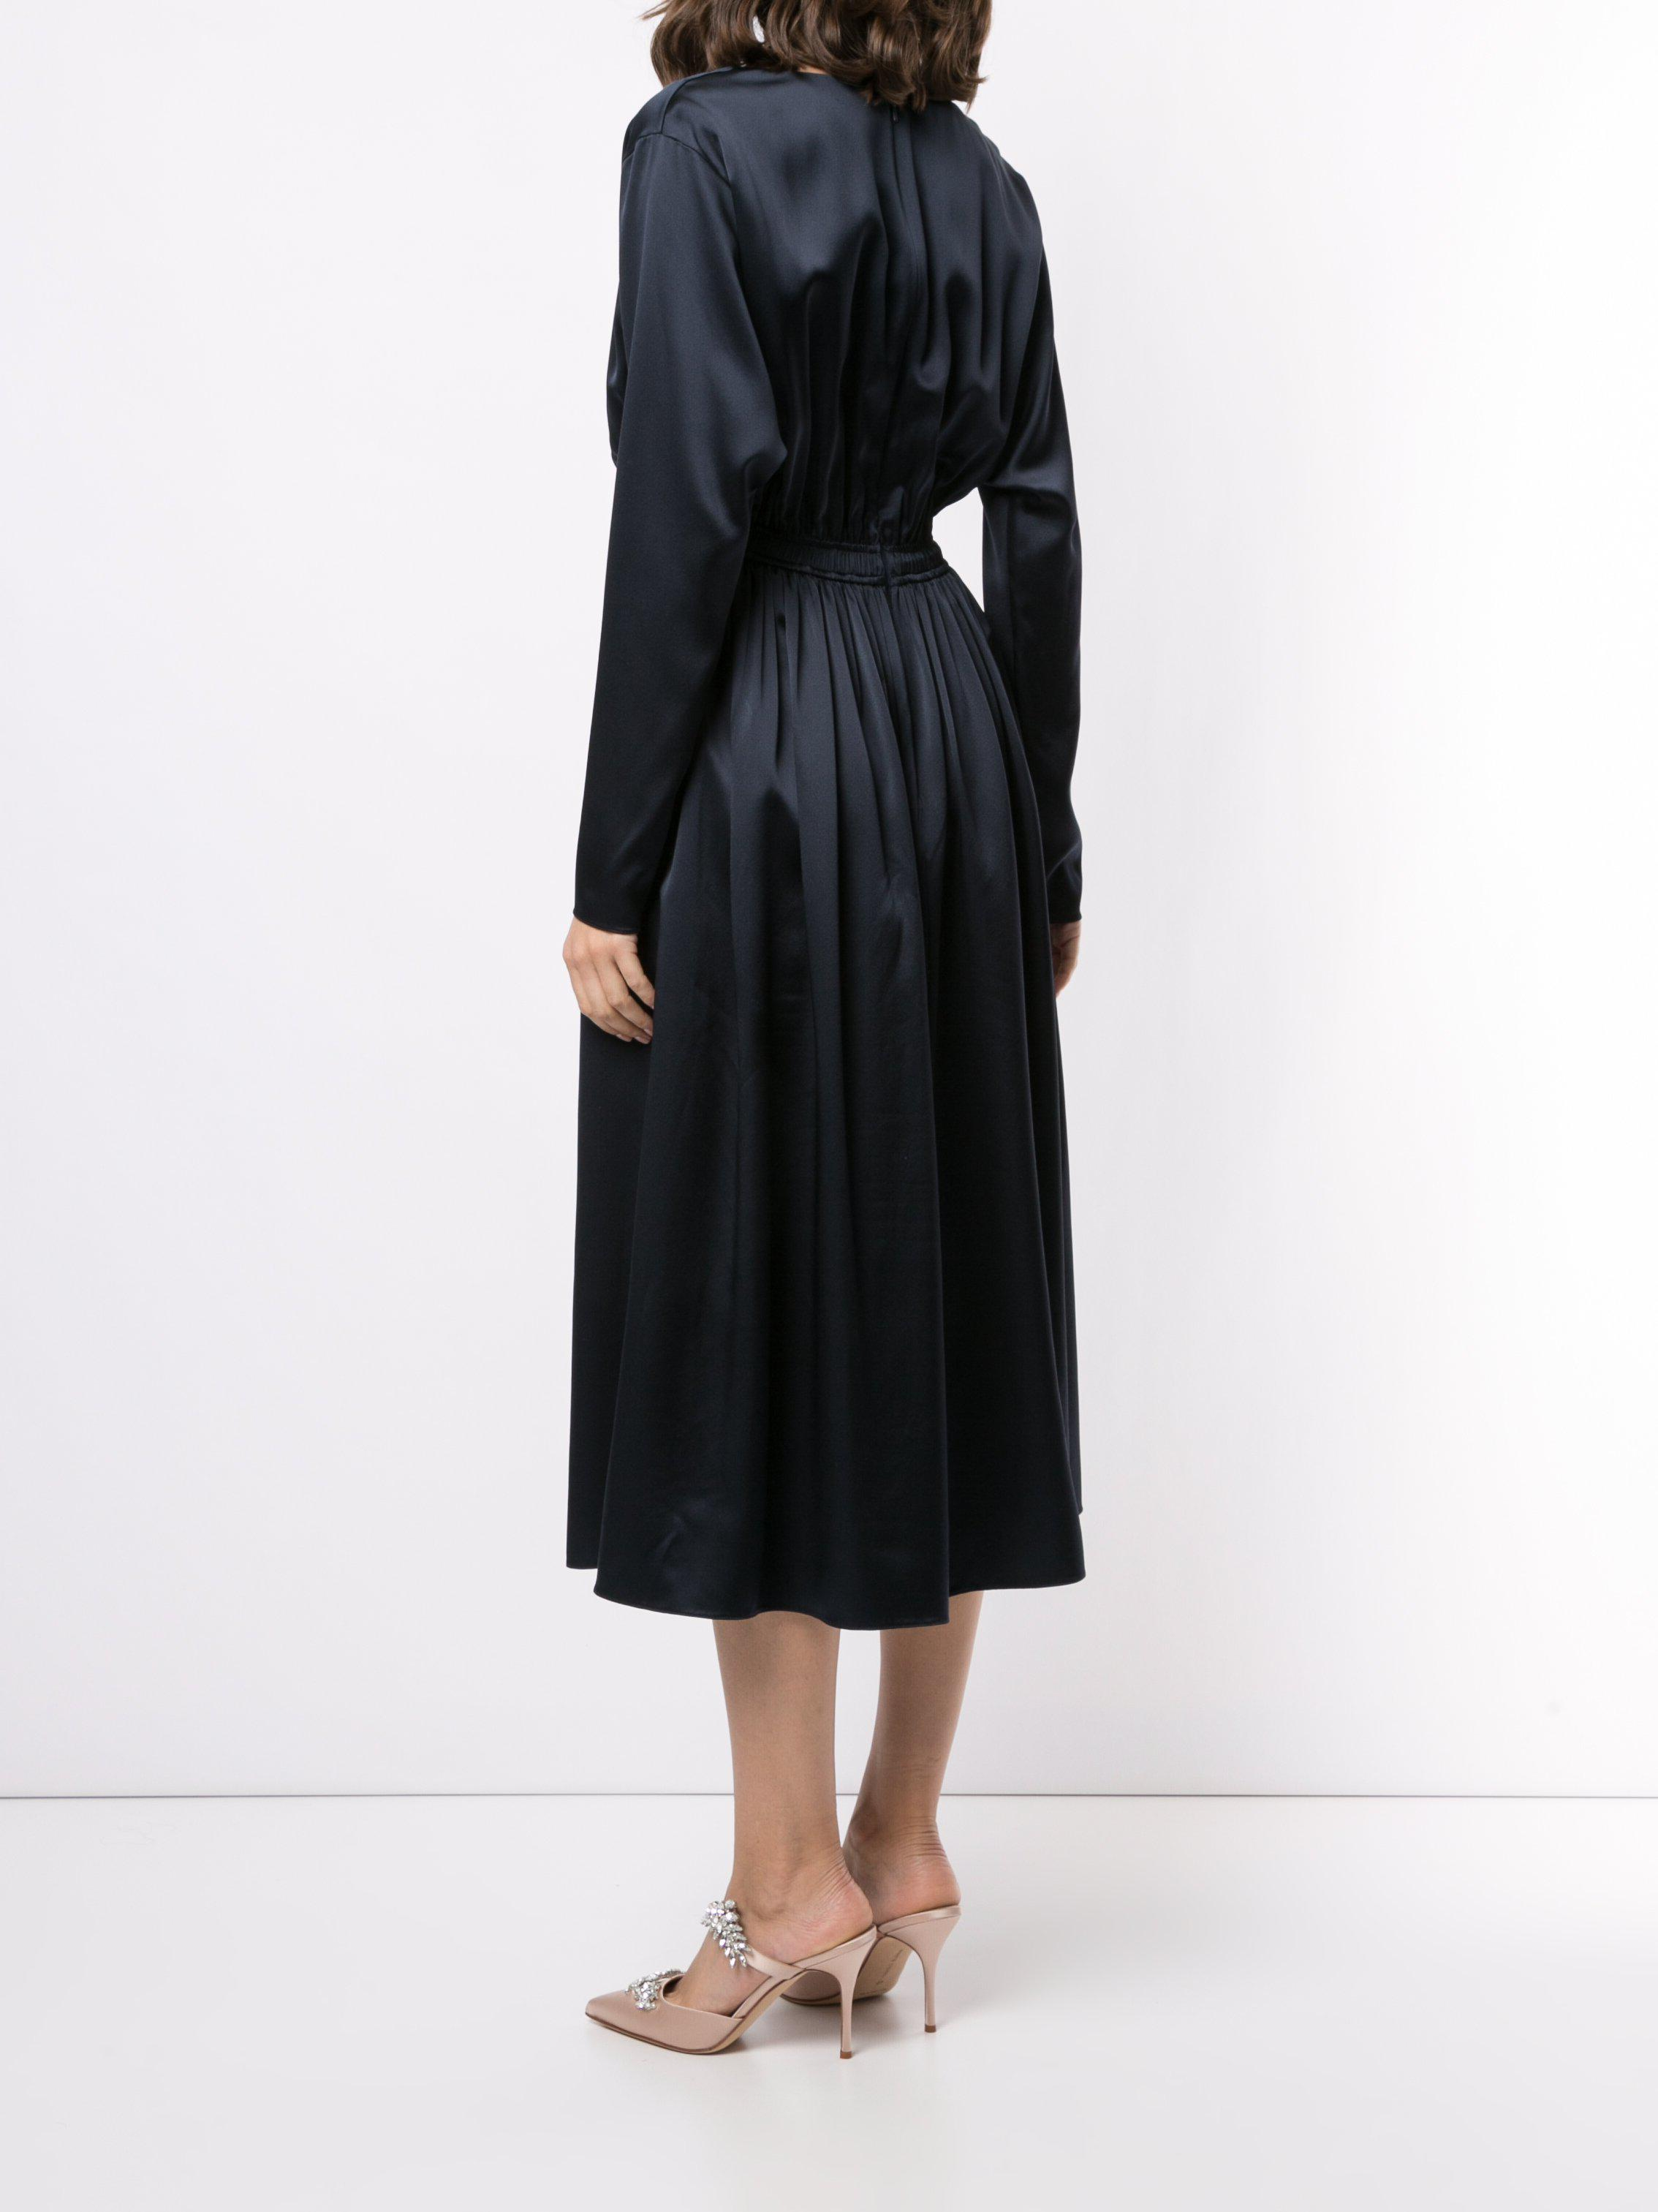 COWL NECK DRESS IN SILK CHARMEUSE 3